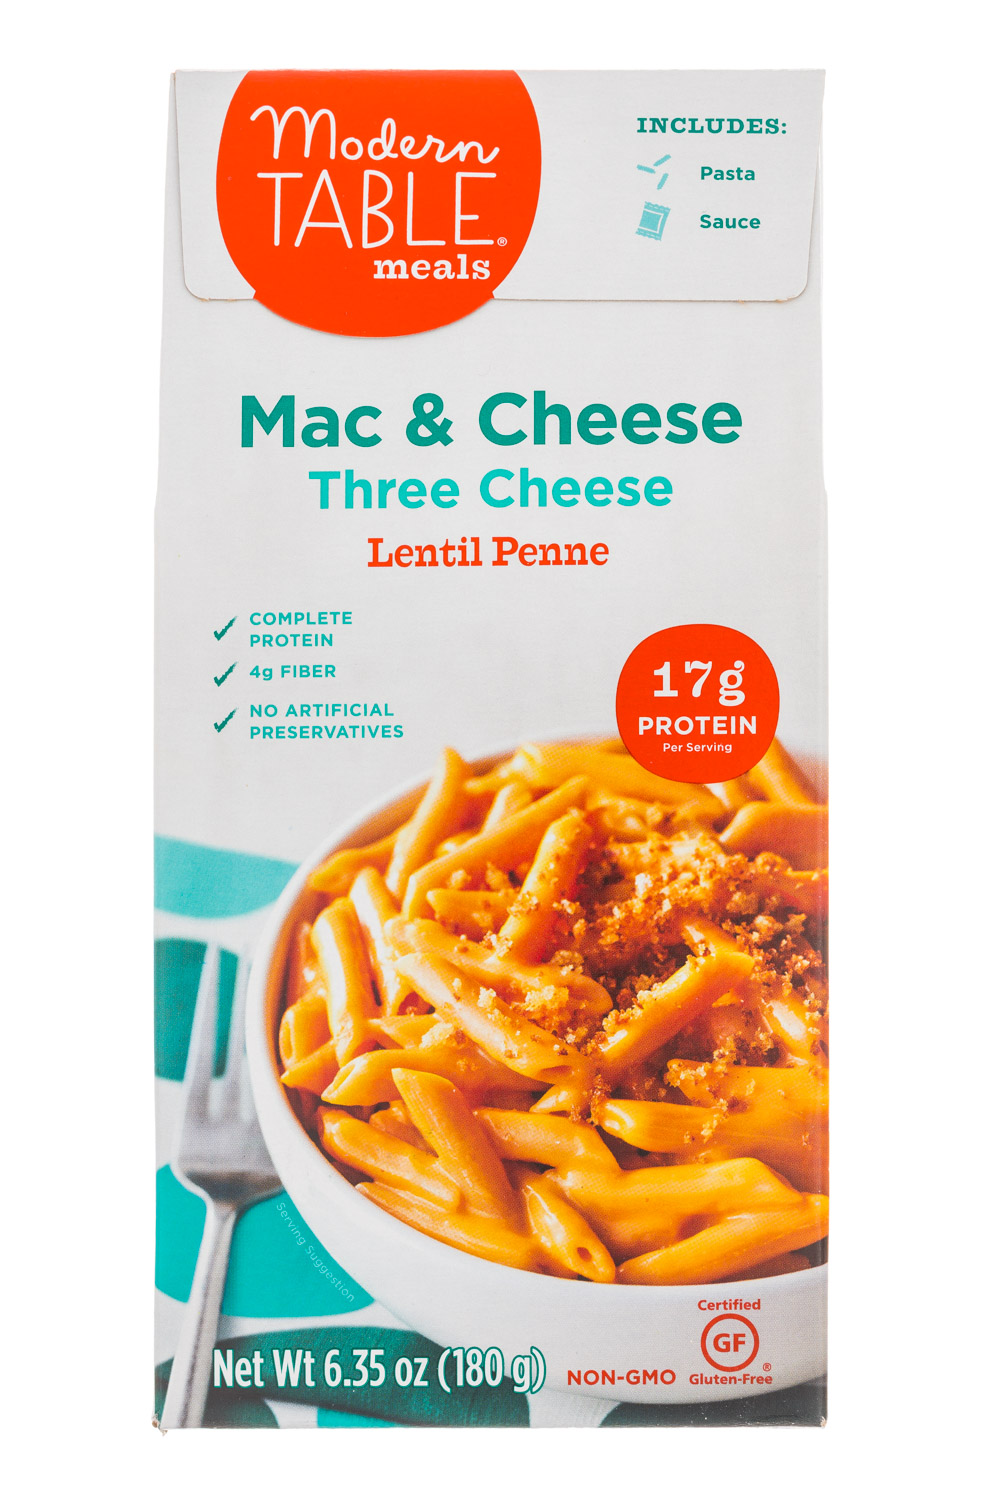 Three Cheese Lentil Penne